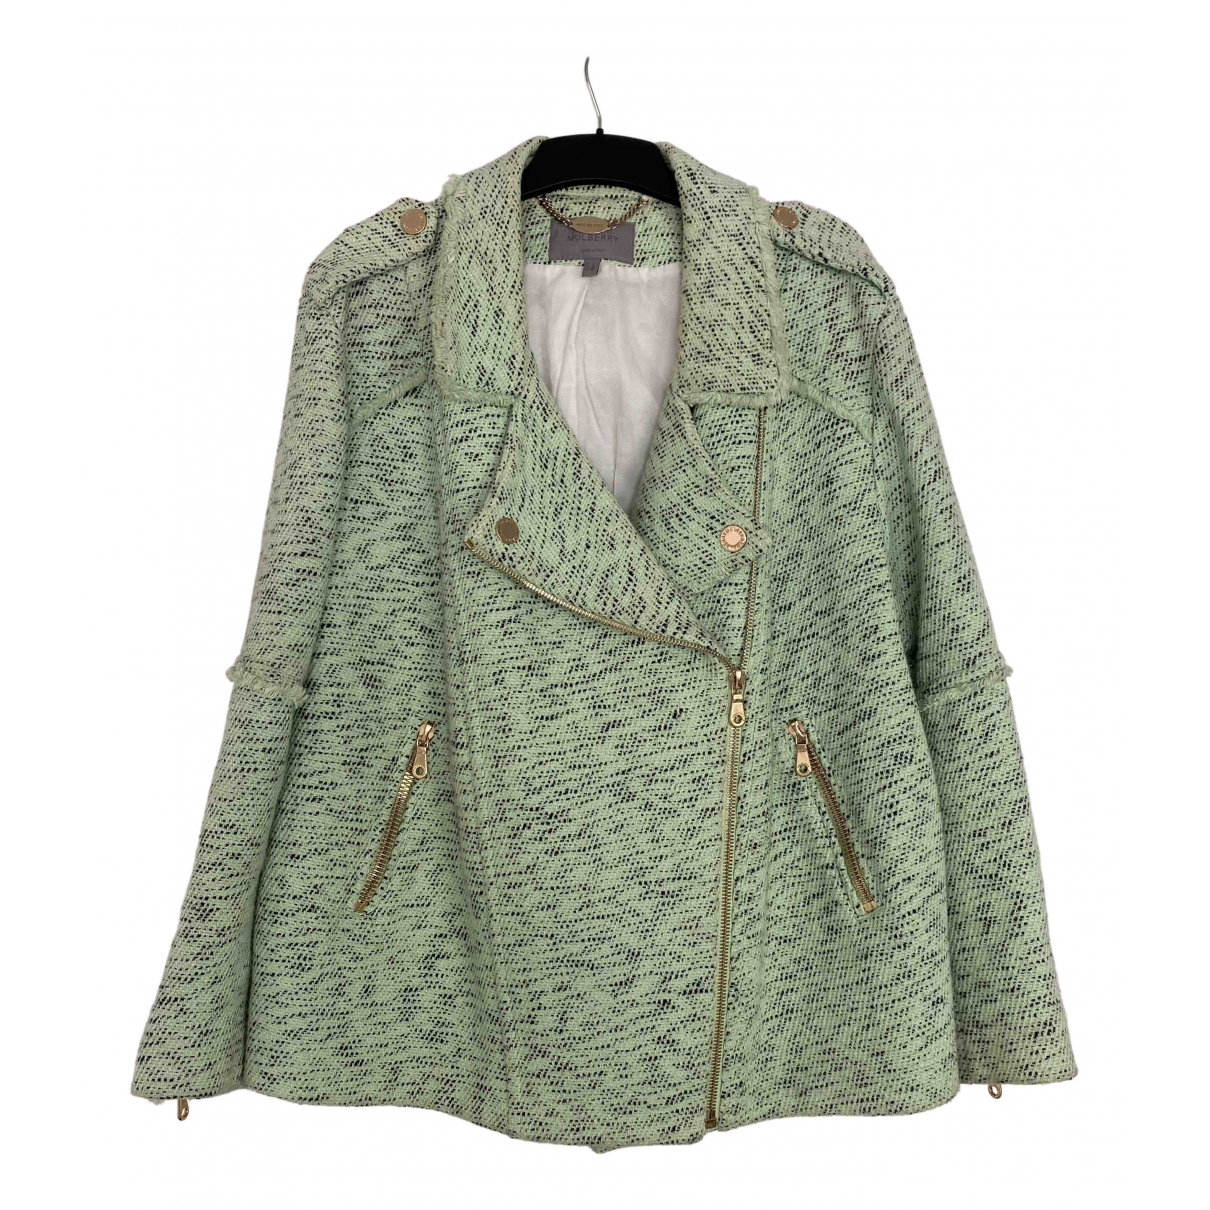 Mulberry N Green Cotton jacket for Women 12 UK